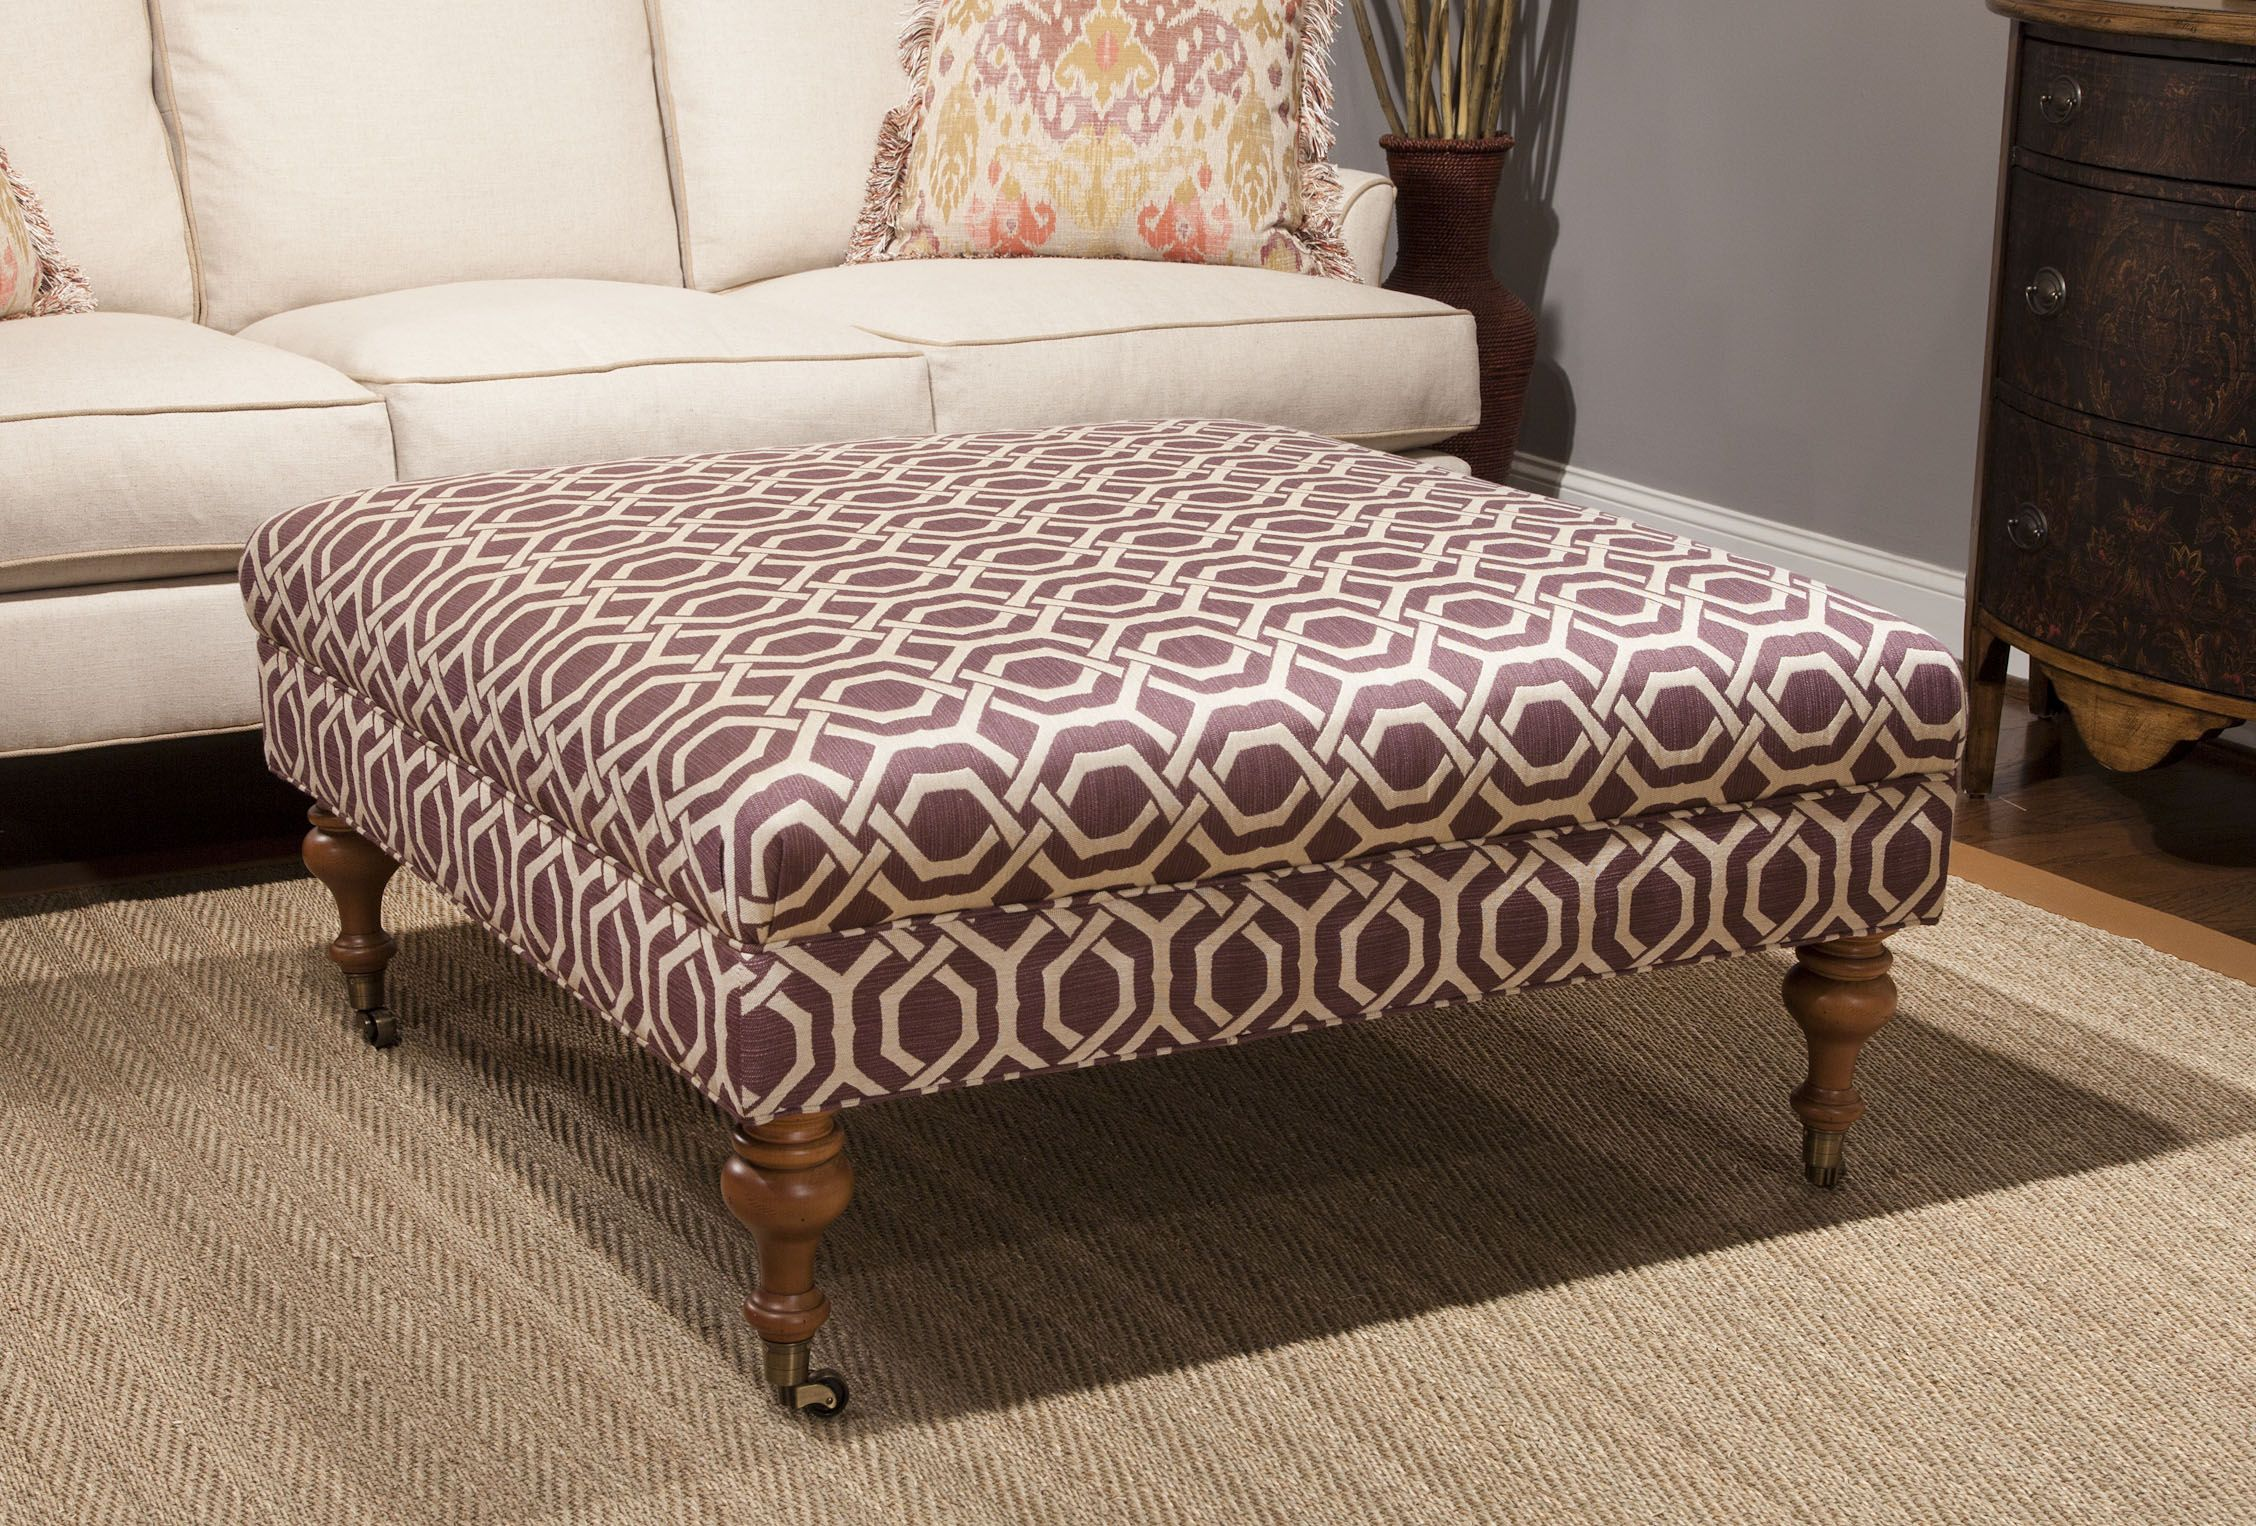 2017H 55 40 Ottoman from Huntington House Furniture High Point